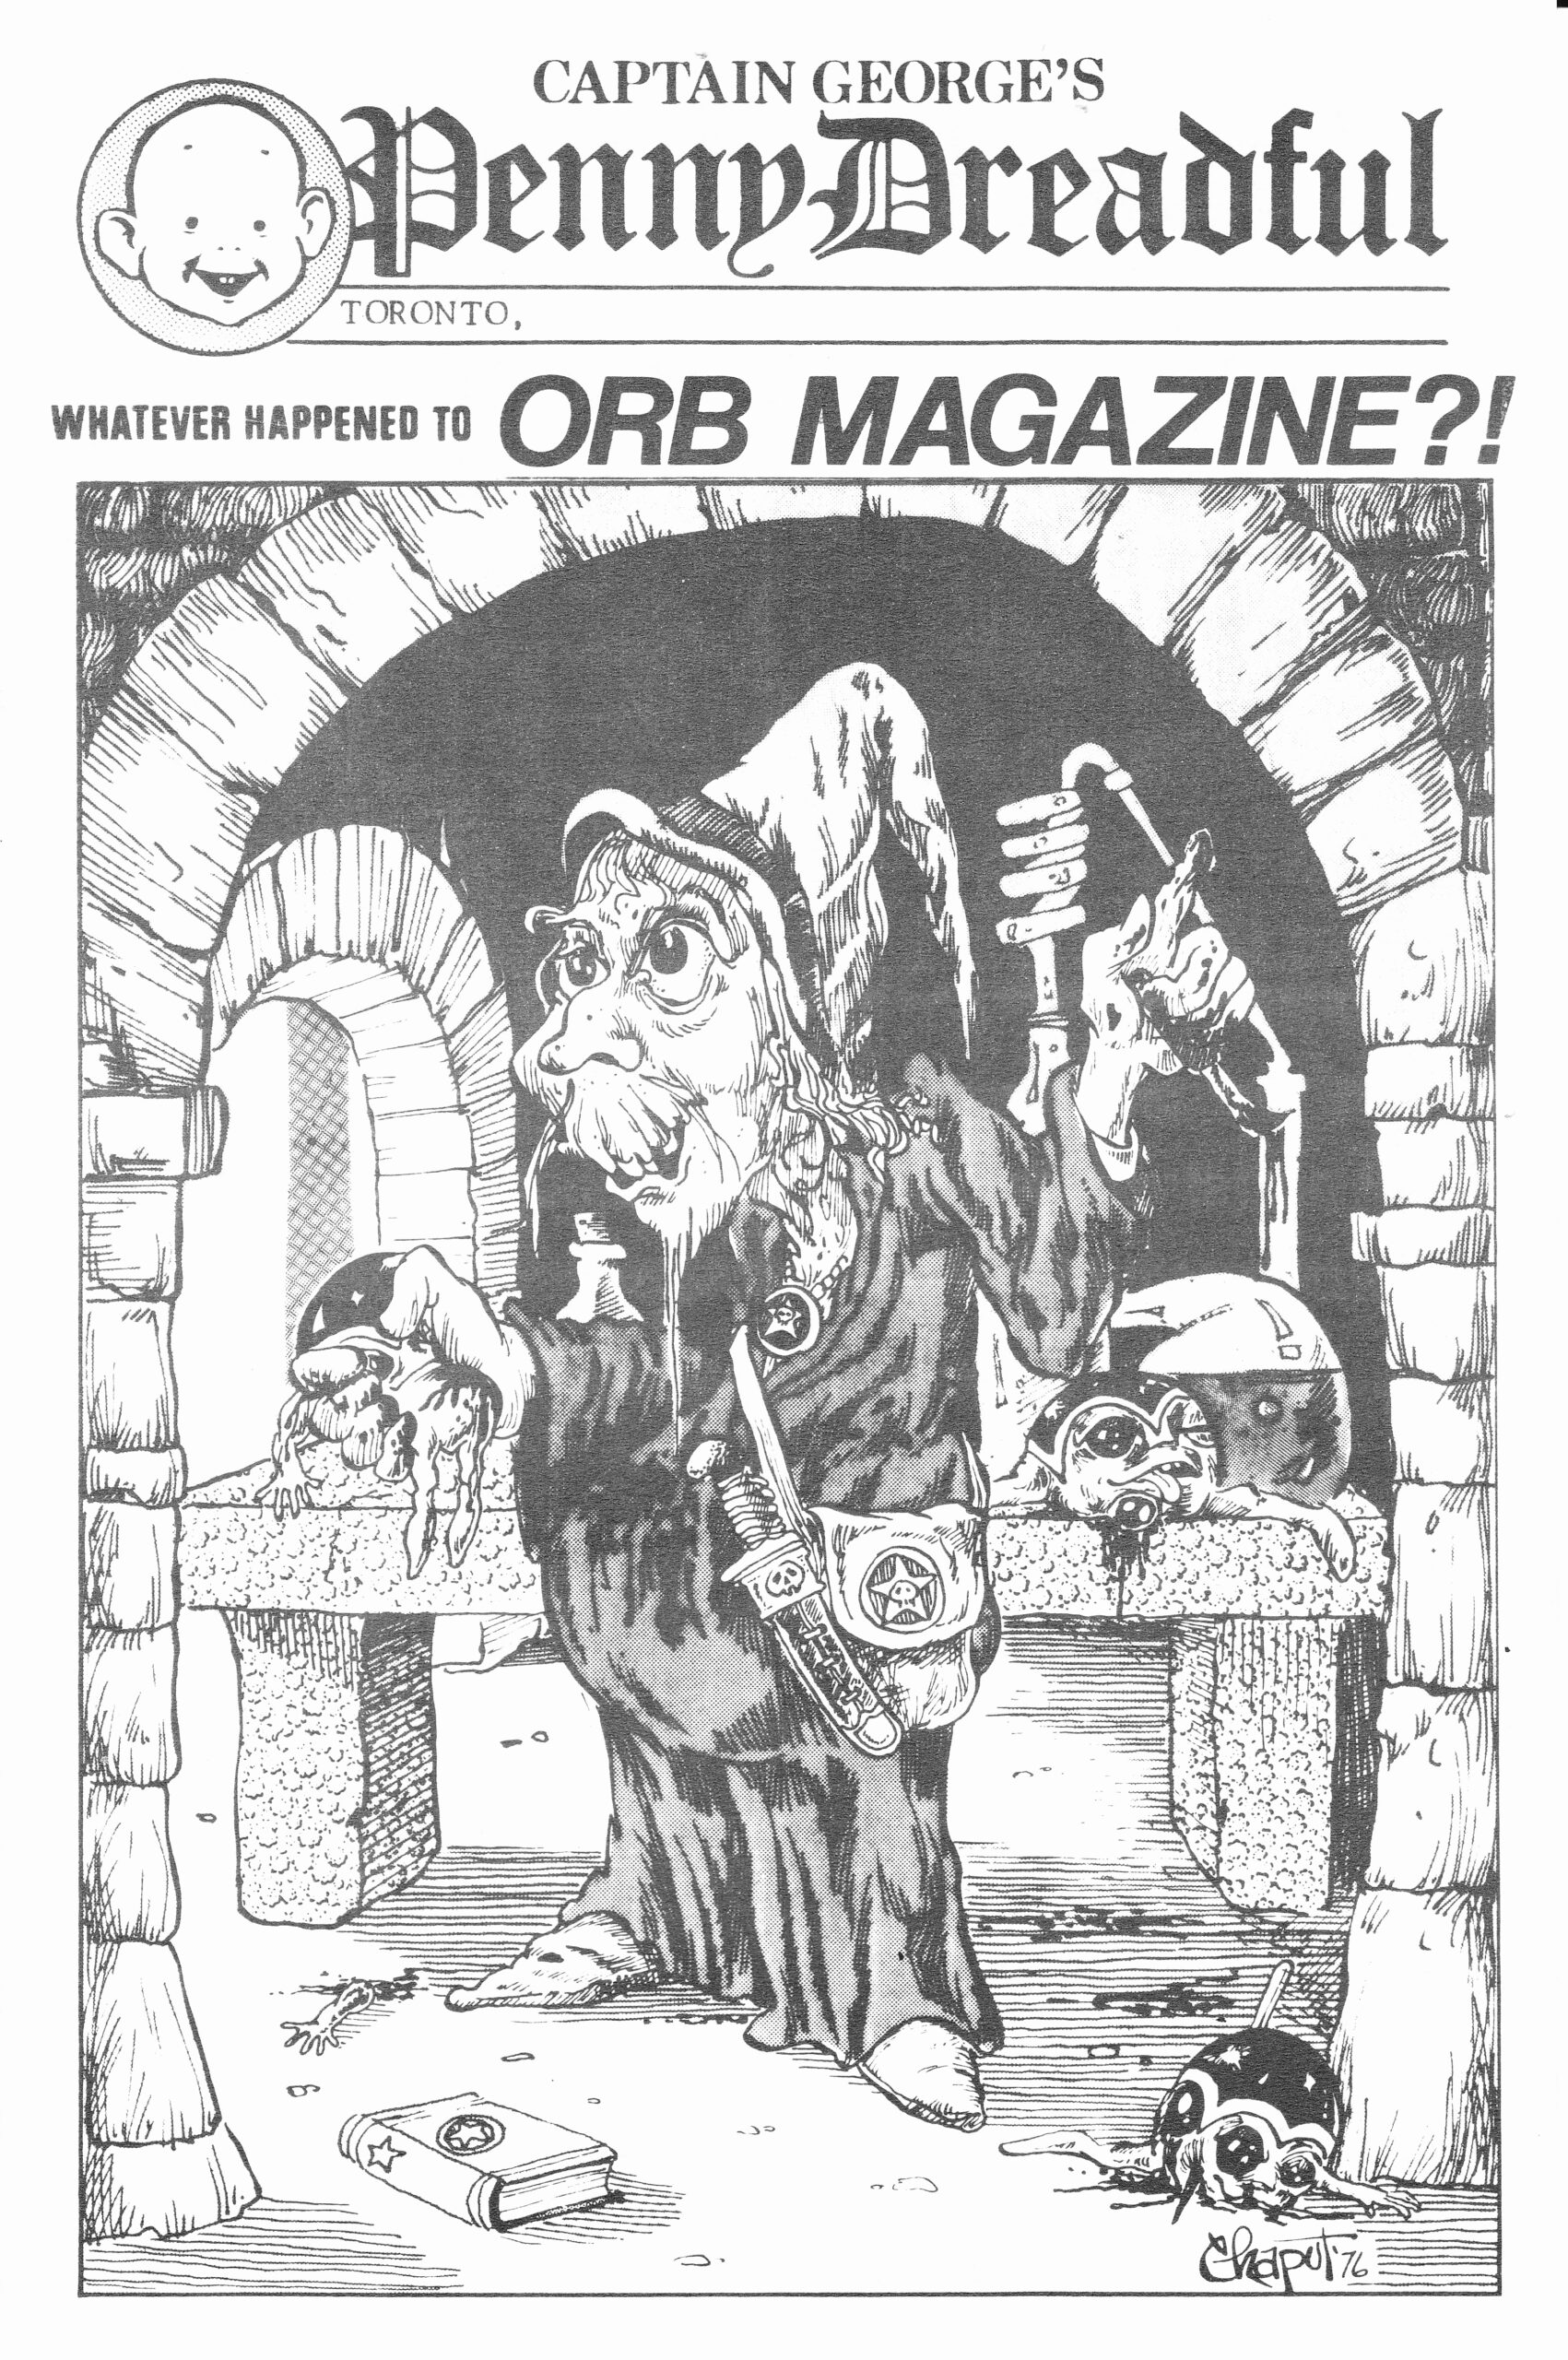 C:\Users\Robert\Documents\CARTOONING ILLUSTRATION ANIMATION\IMAGE COVER PERIODICAL\Capt. Georges Penny Dreadful, no number, no date, fc.jpg